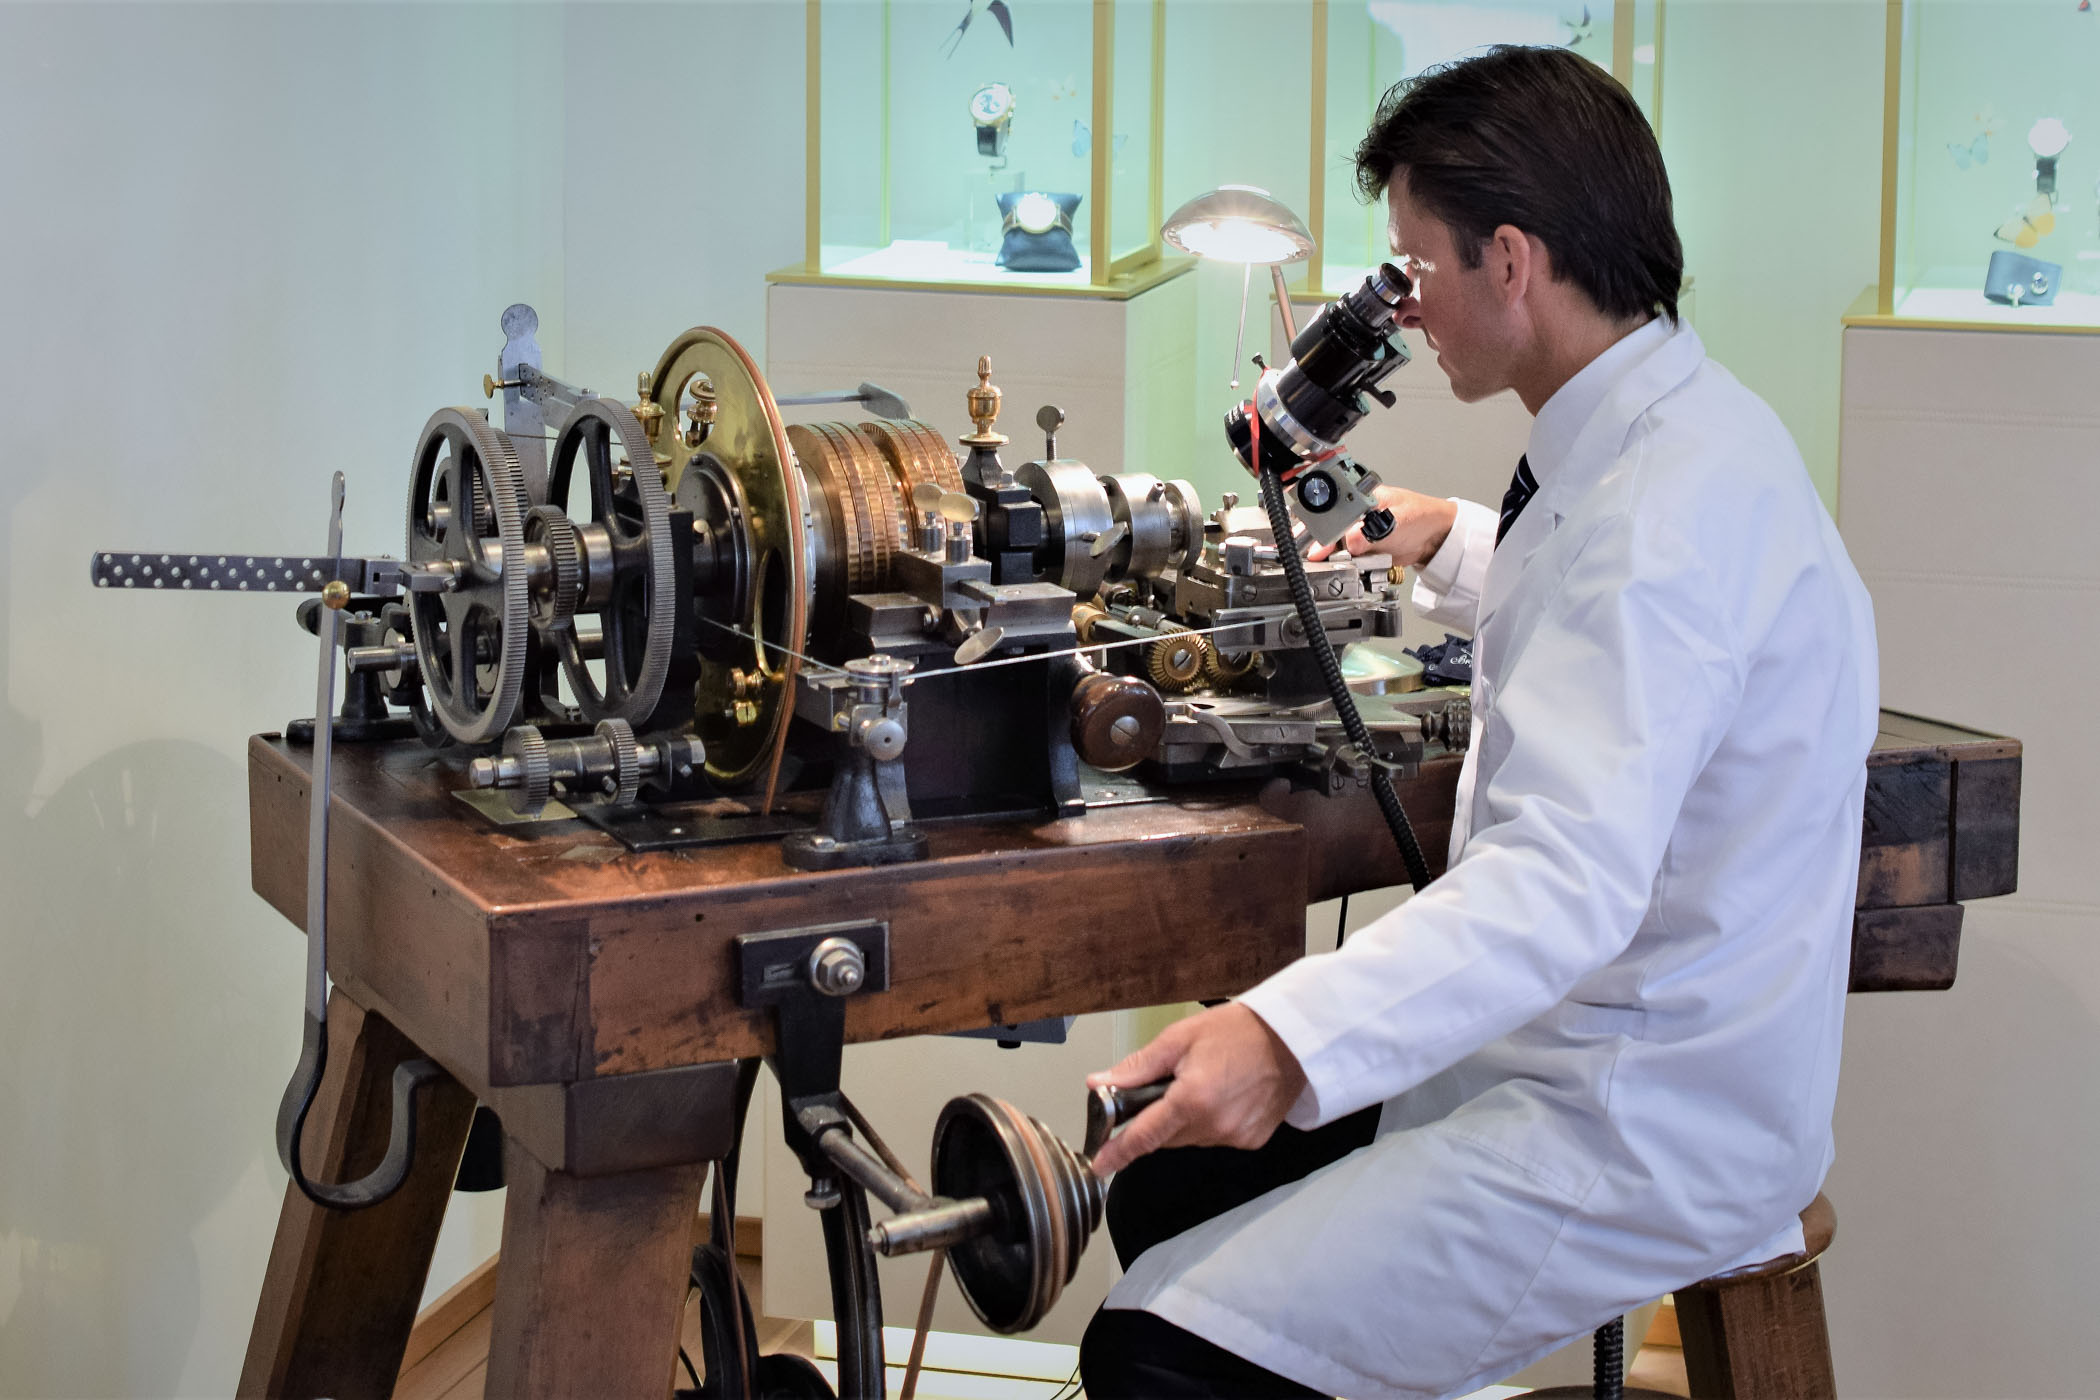 Breguet Guillochage Engine Turning technique in-depth - 3